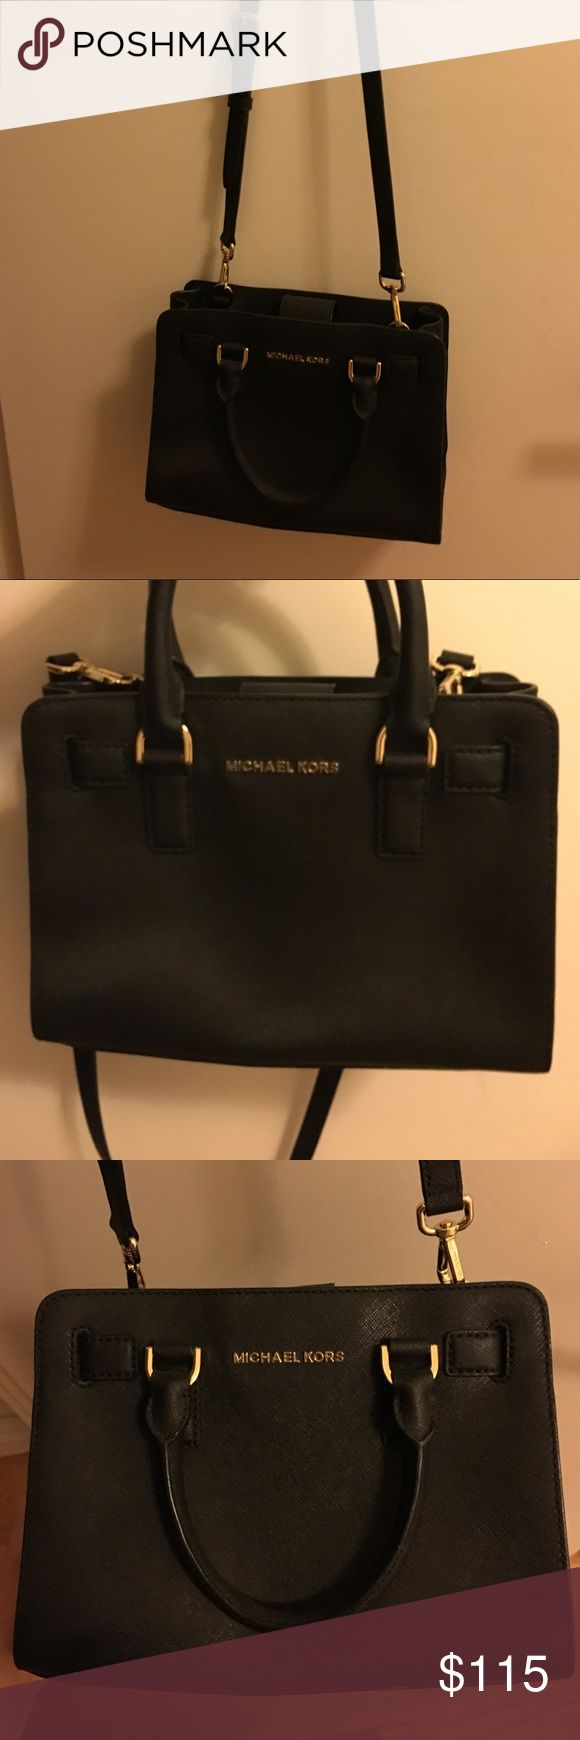 Michael Kors black crossbody Medium rectangular cross-body in excellent, barely used condition. Comes with two handles and long detachable strap. Michael Kors Bags Crossbody Bags